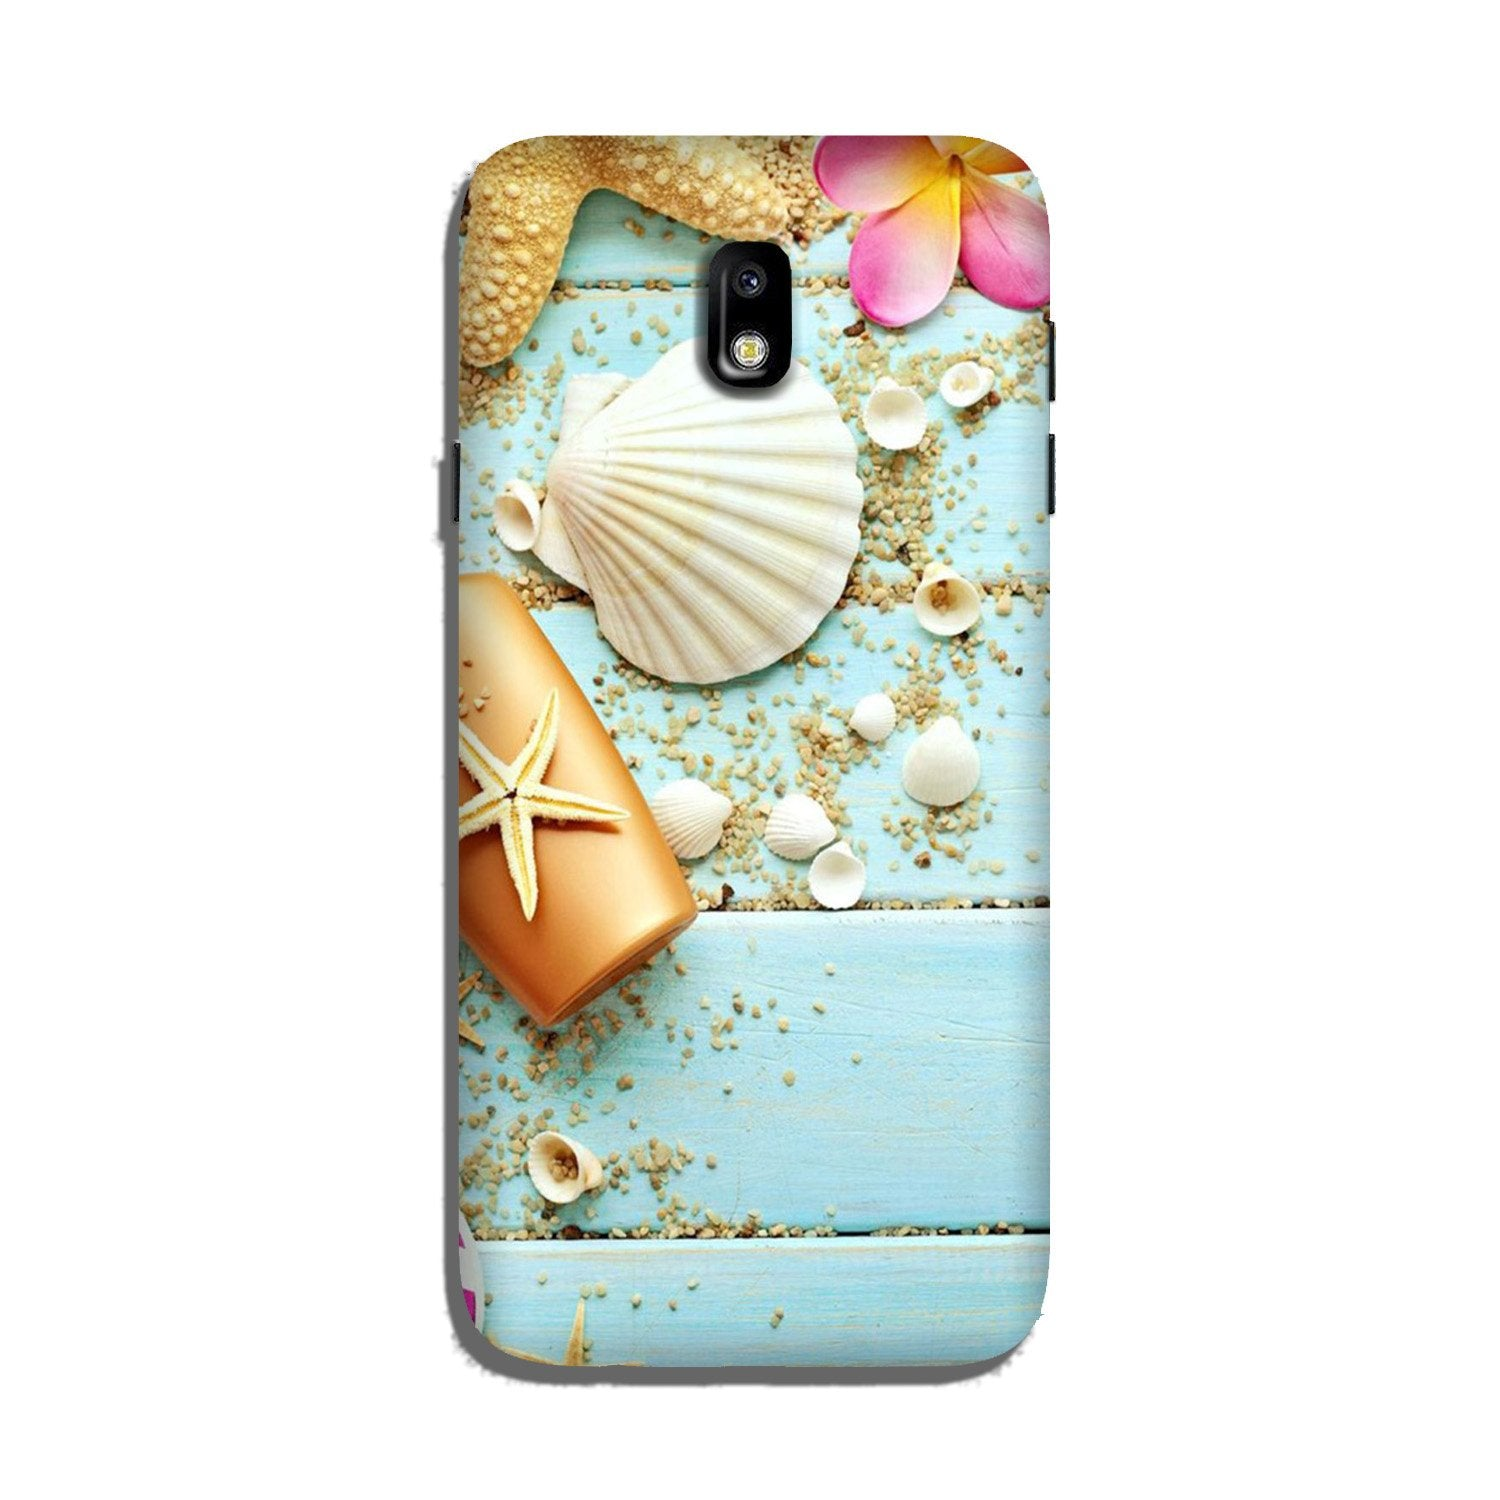 Sea Shells Case for Galaxy J7 Pro